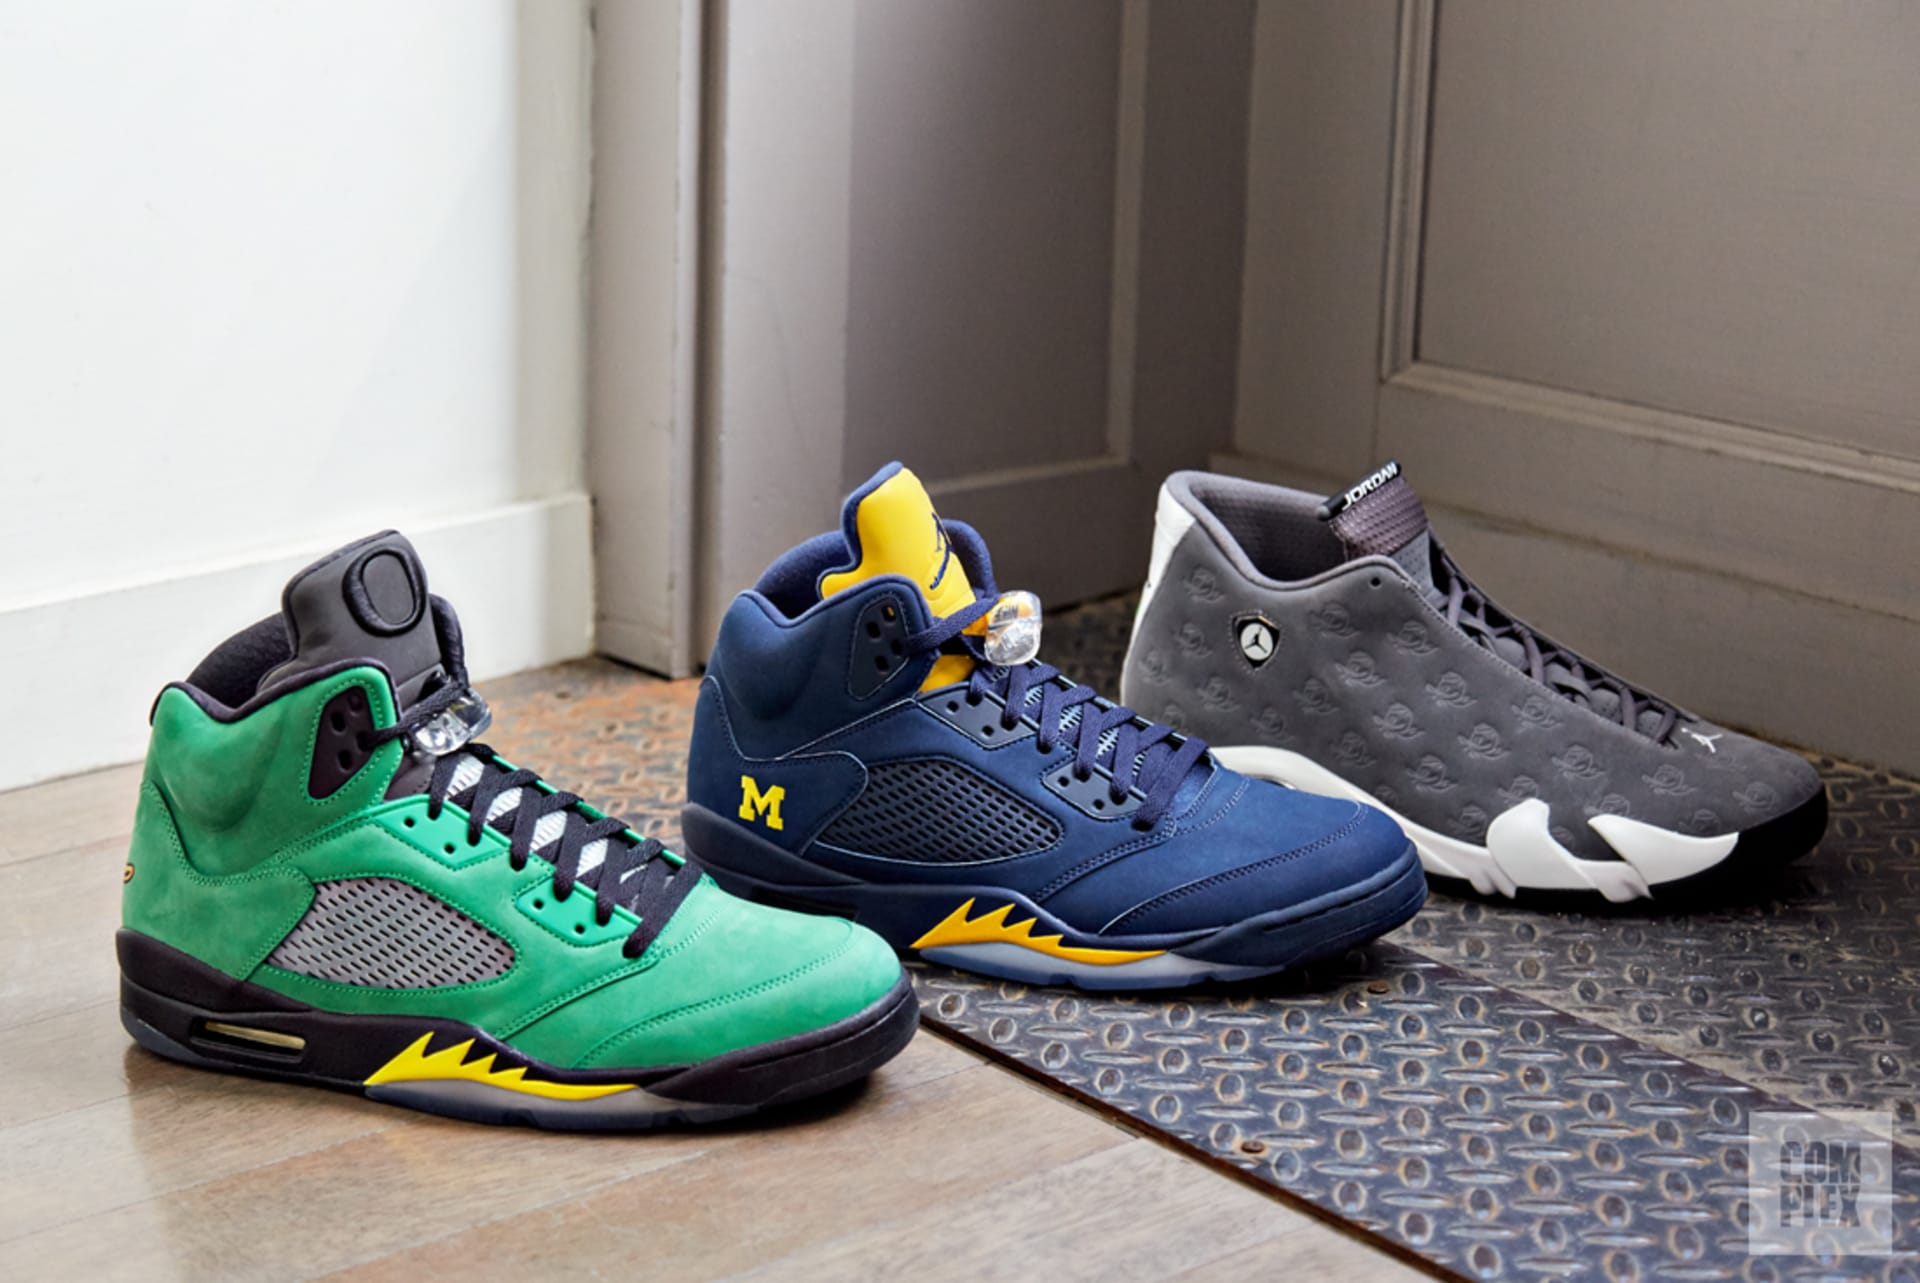 innovative design 5c0c6 1f078 Air Jordan PEs made for the University of Oregon and Michigan. Sneakers  courtesy of Stadium Goods. Image via Complex Original David Cabrera